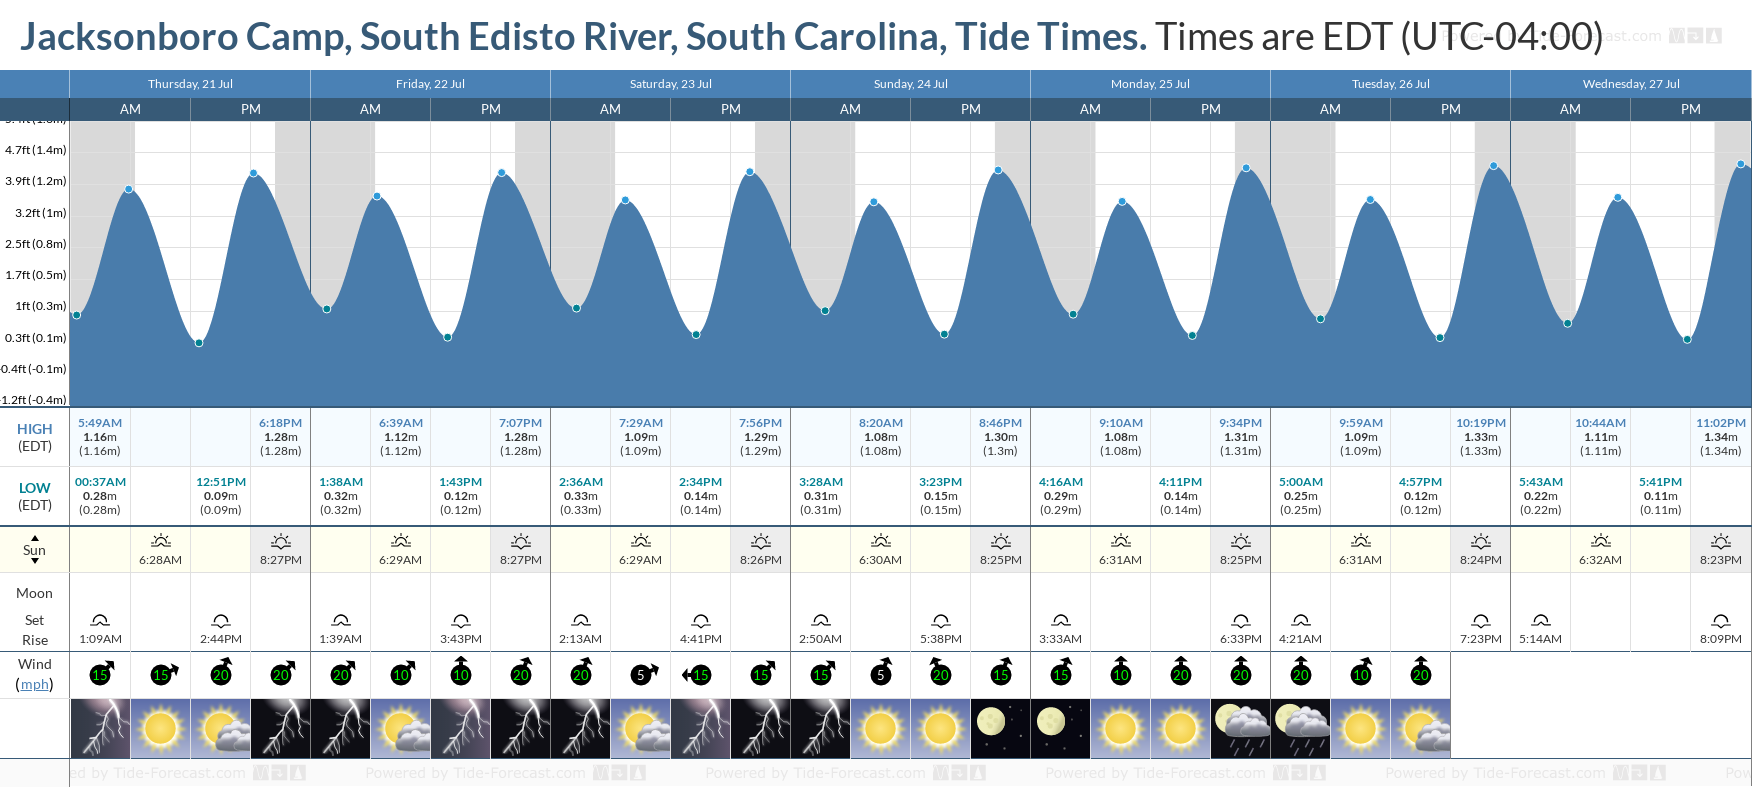 Jacksonboro Camp, South Edisto River, South Carolina Tide Chart including high and low tide tide times for the next 7 days